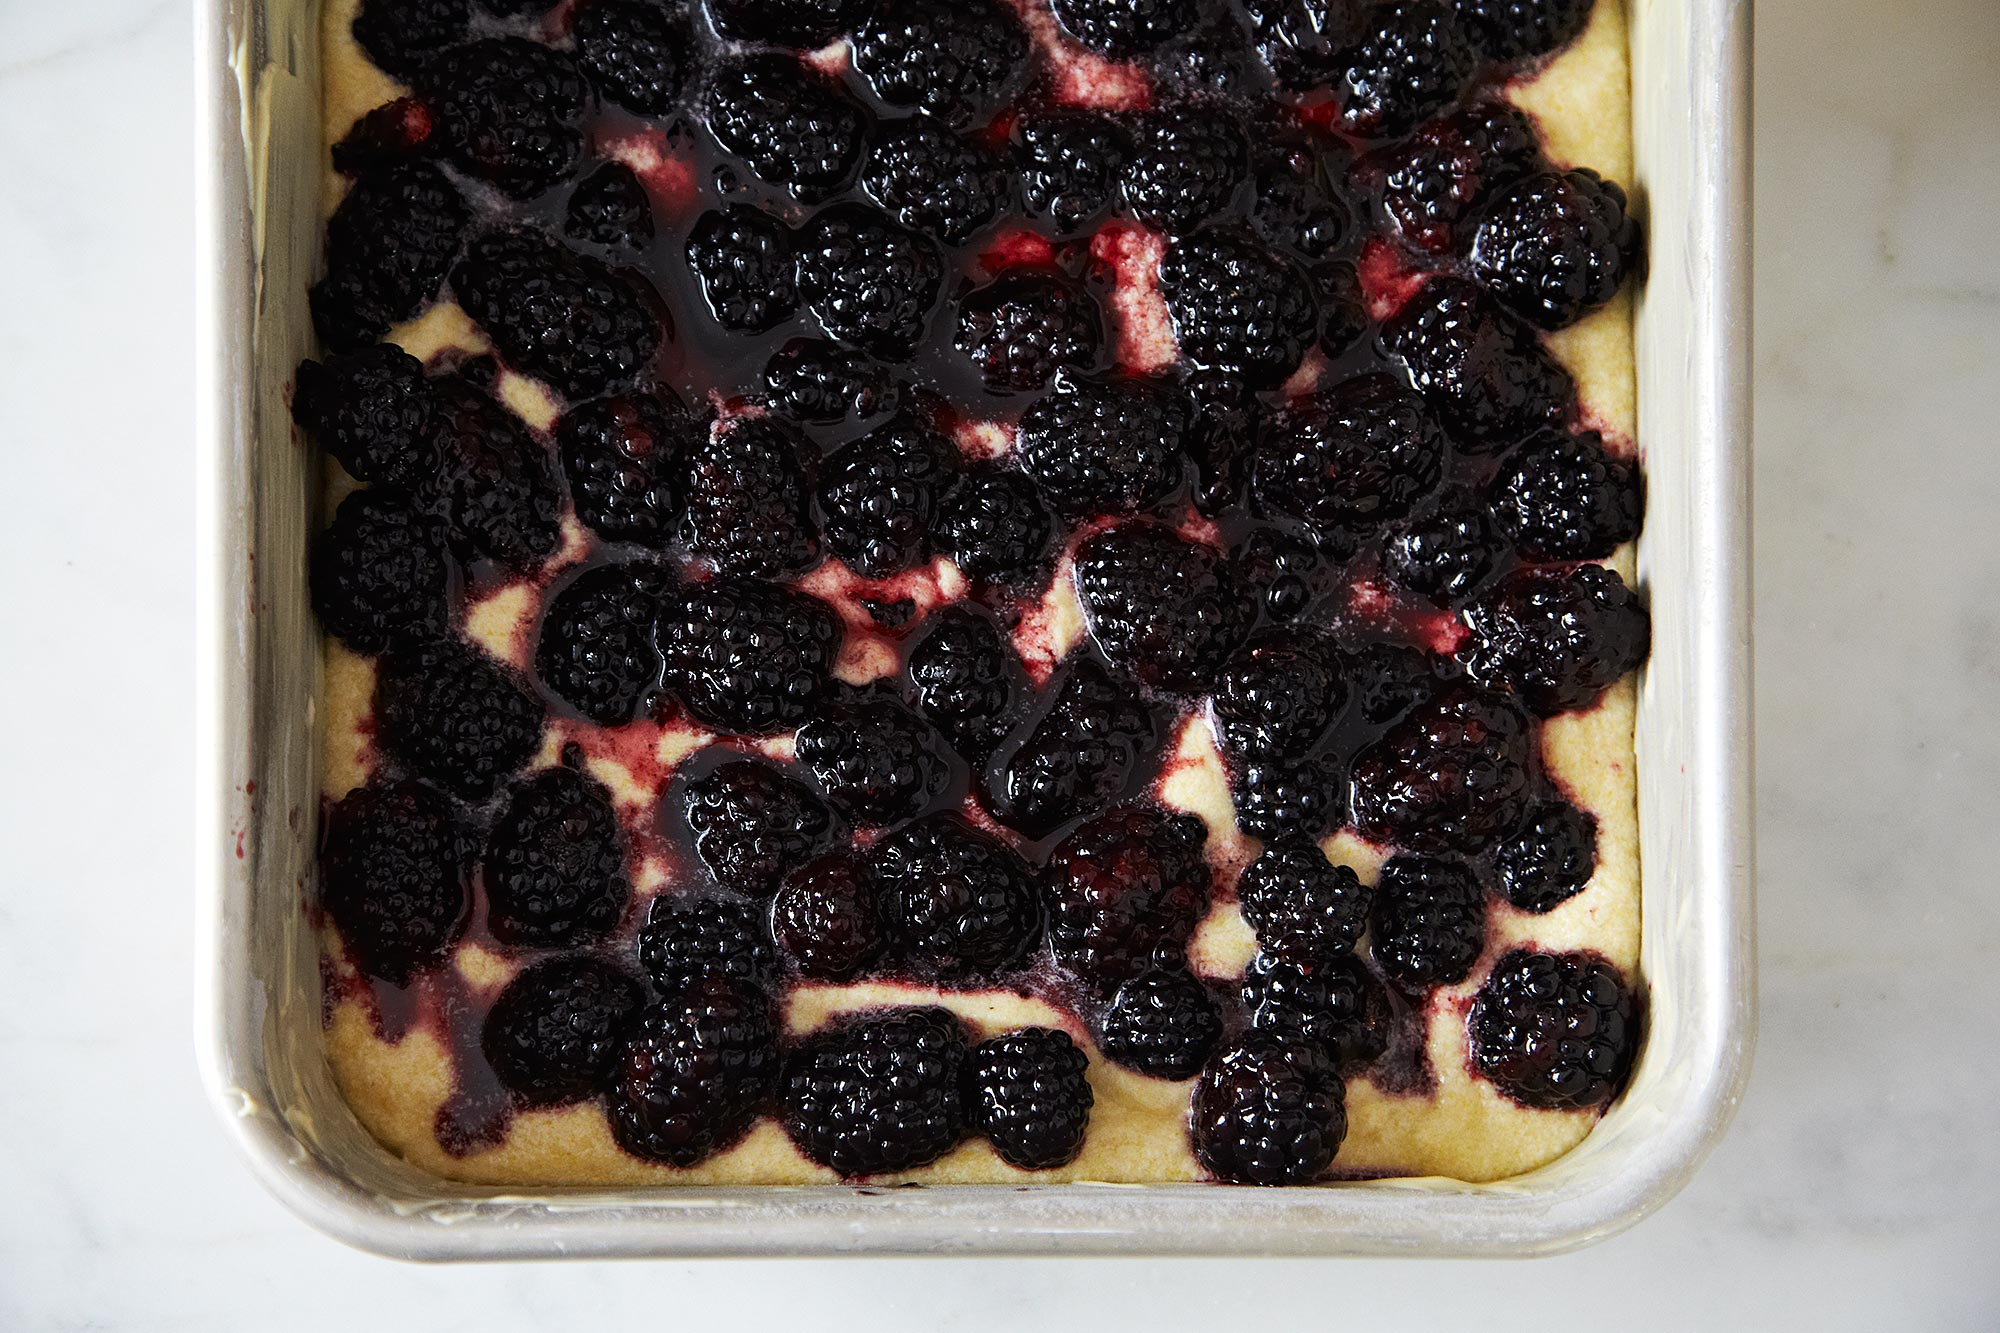 2013-0730_finalist_blackberry-cornbread-buckle-430